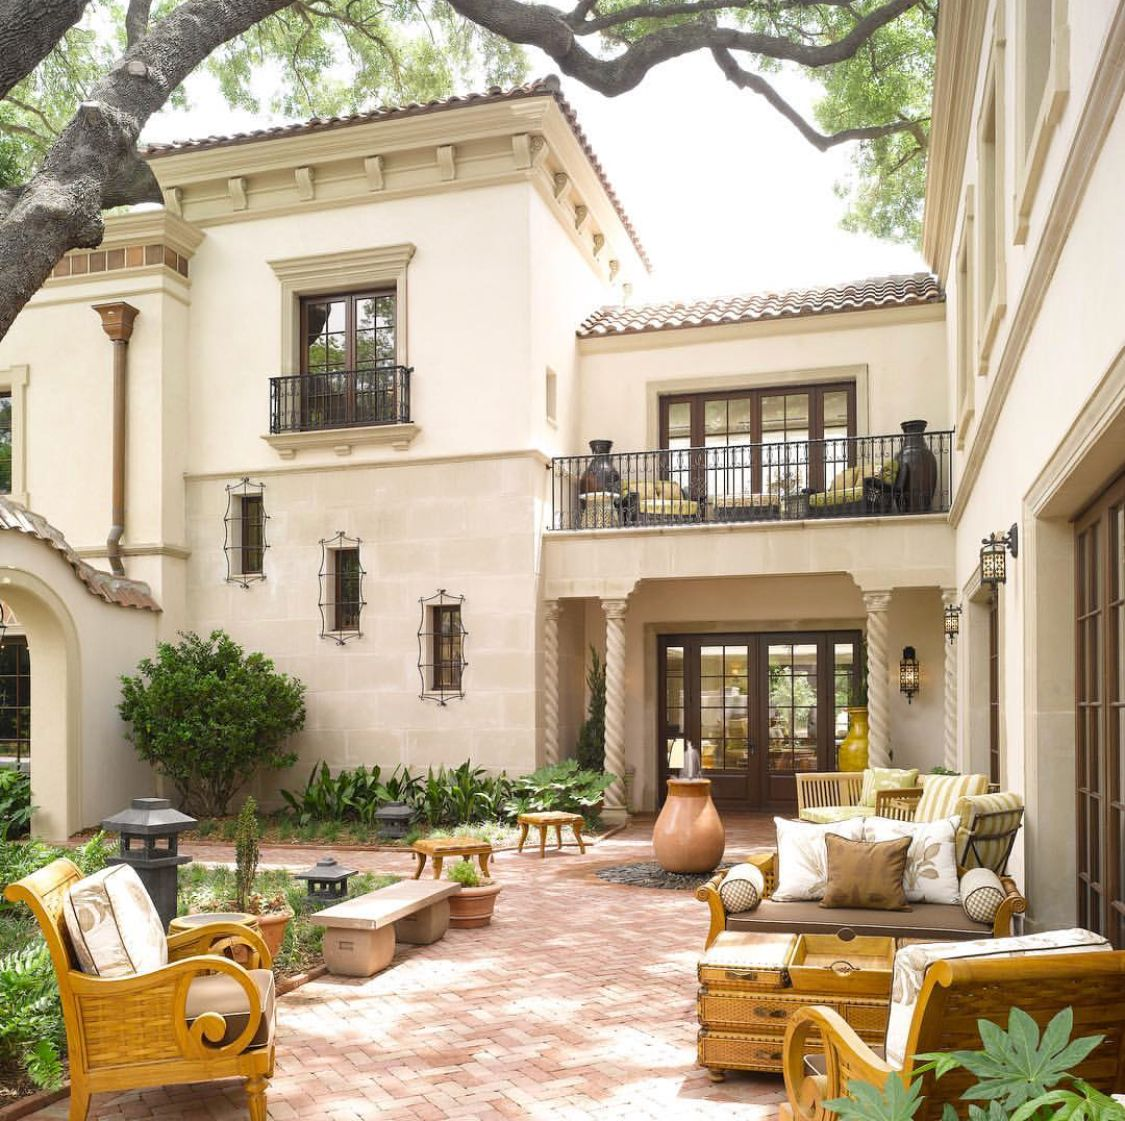 Pin By Architect4u Proektnaya Mastersk On Even A Brick Wants To Be Something Spanish Style Homes Courtyard House Plans Colonial Revival Architecture